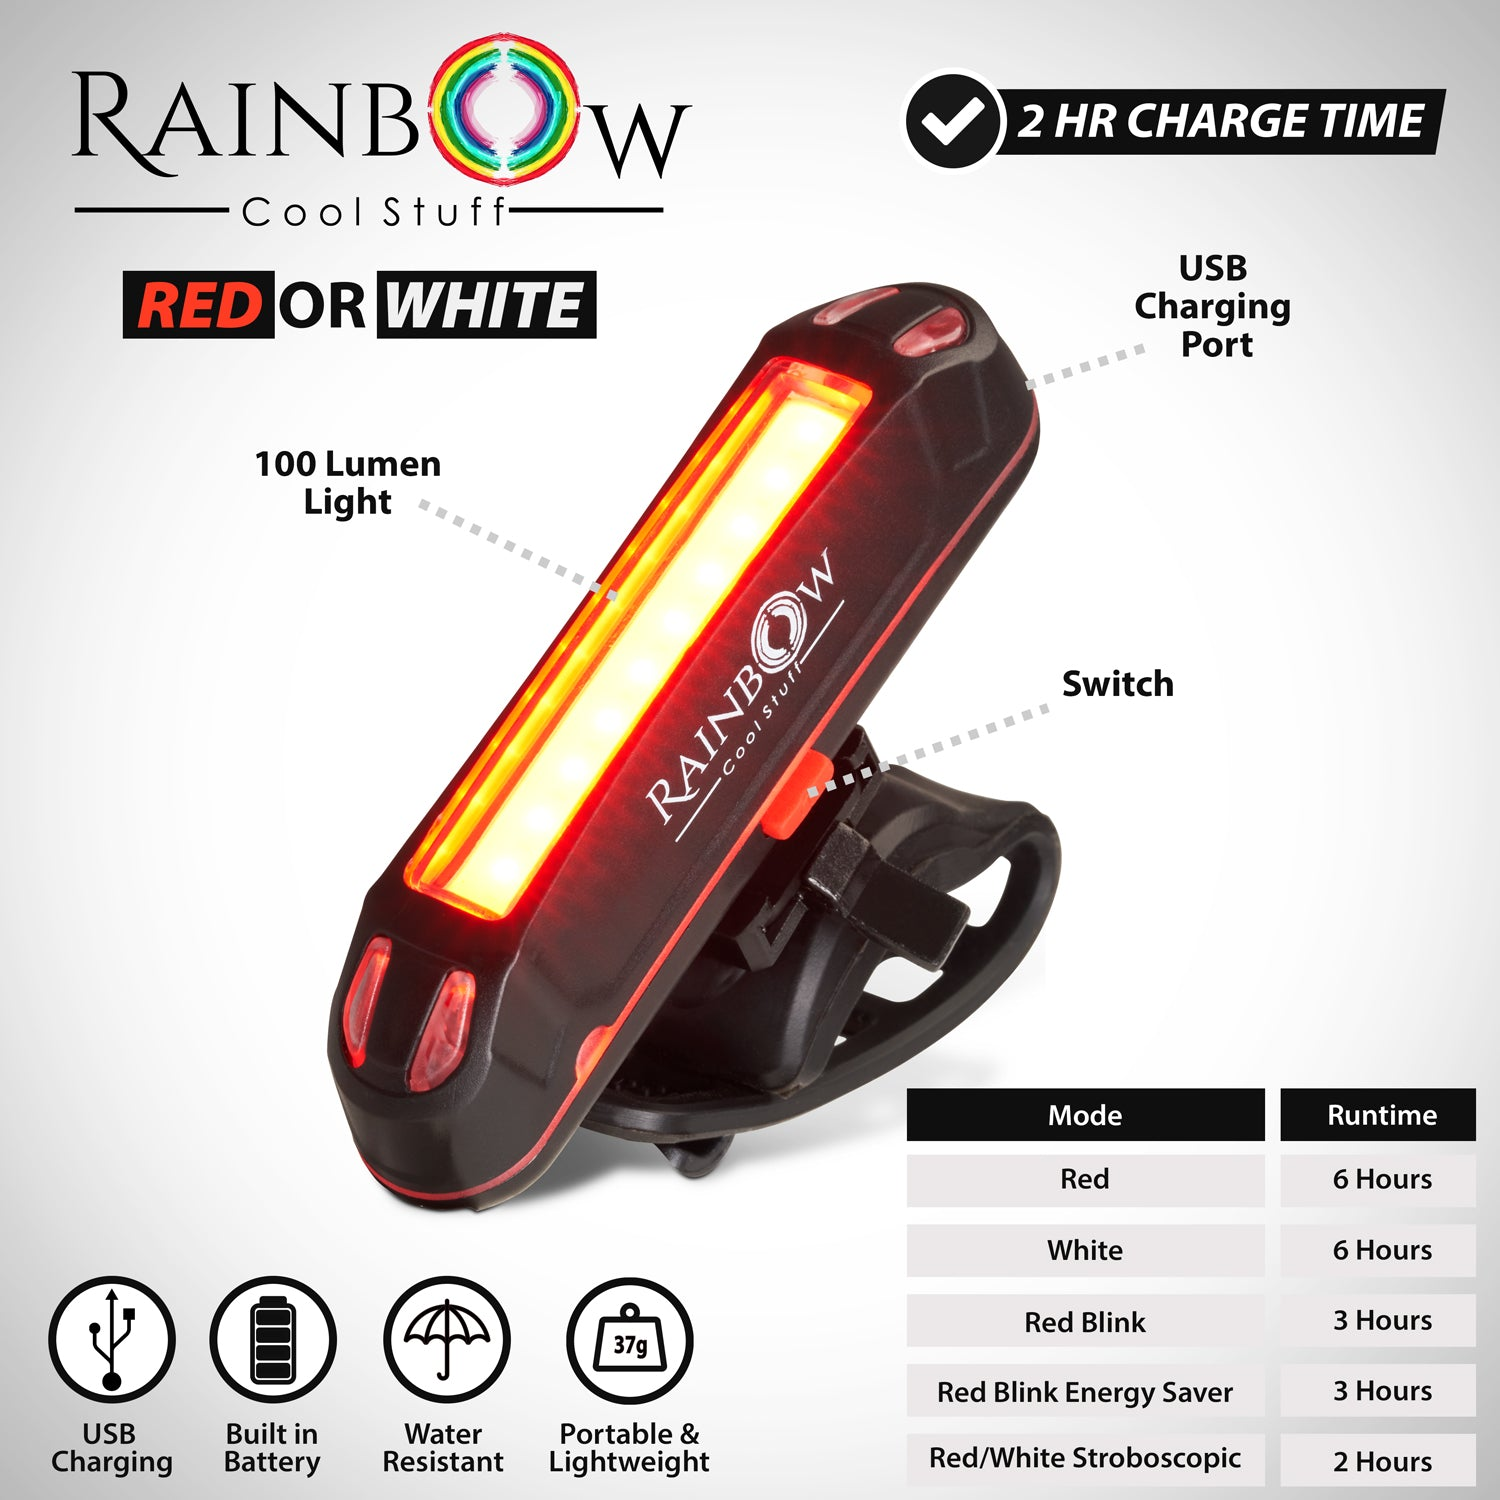 Bike Lights Set LED USB rechargeableRainbow Cool Stuff Front and Back